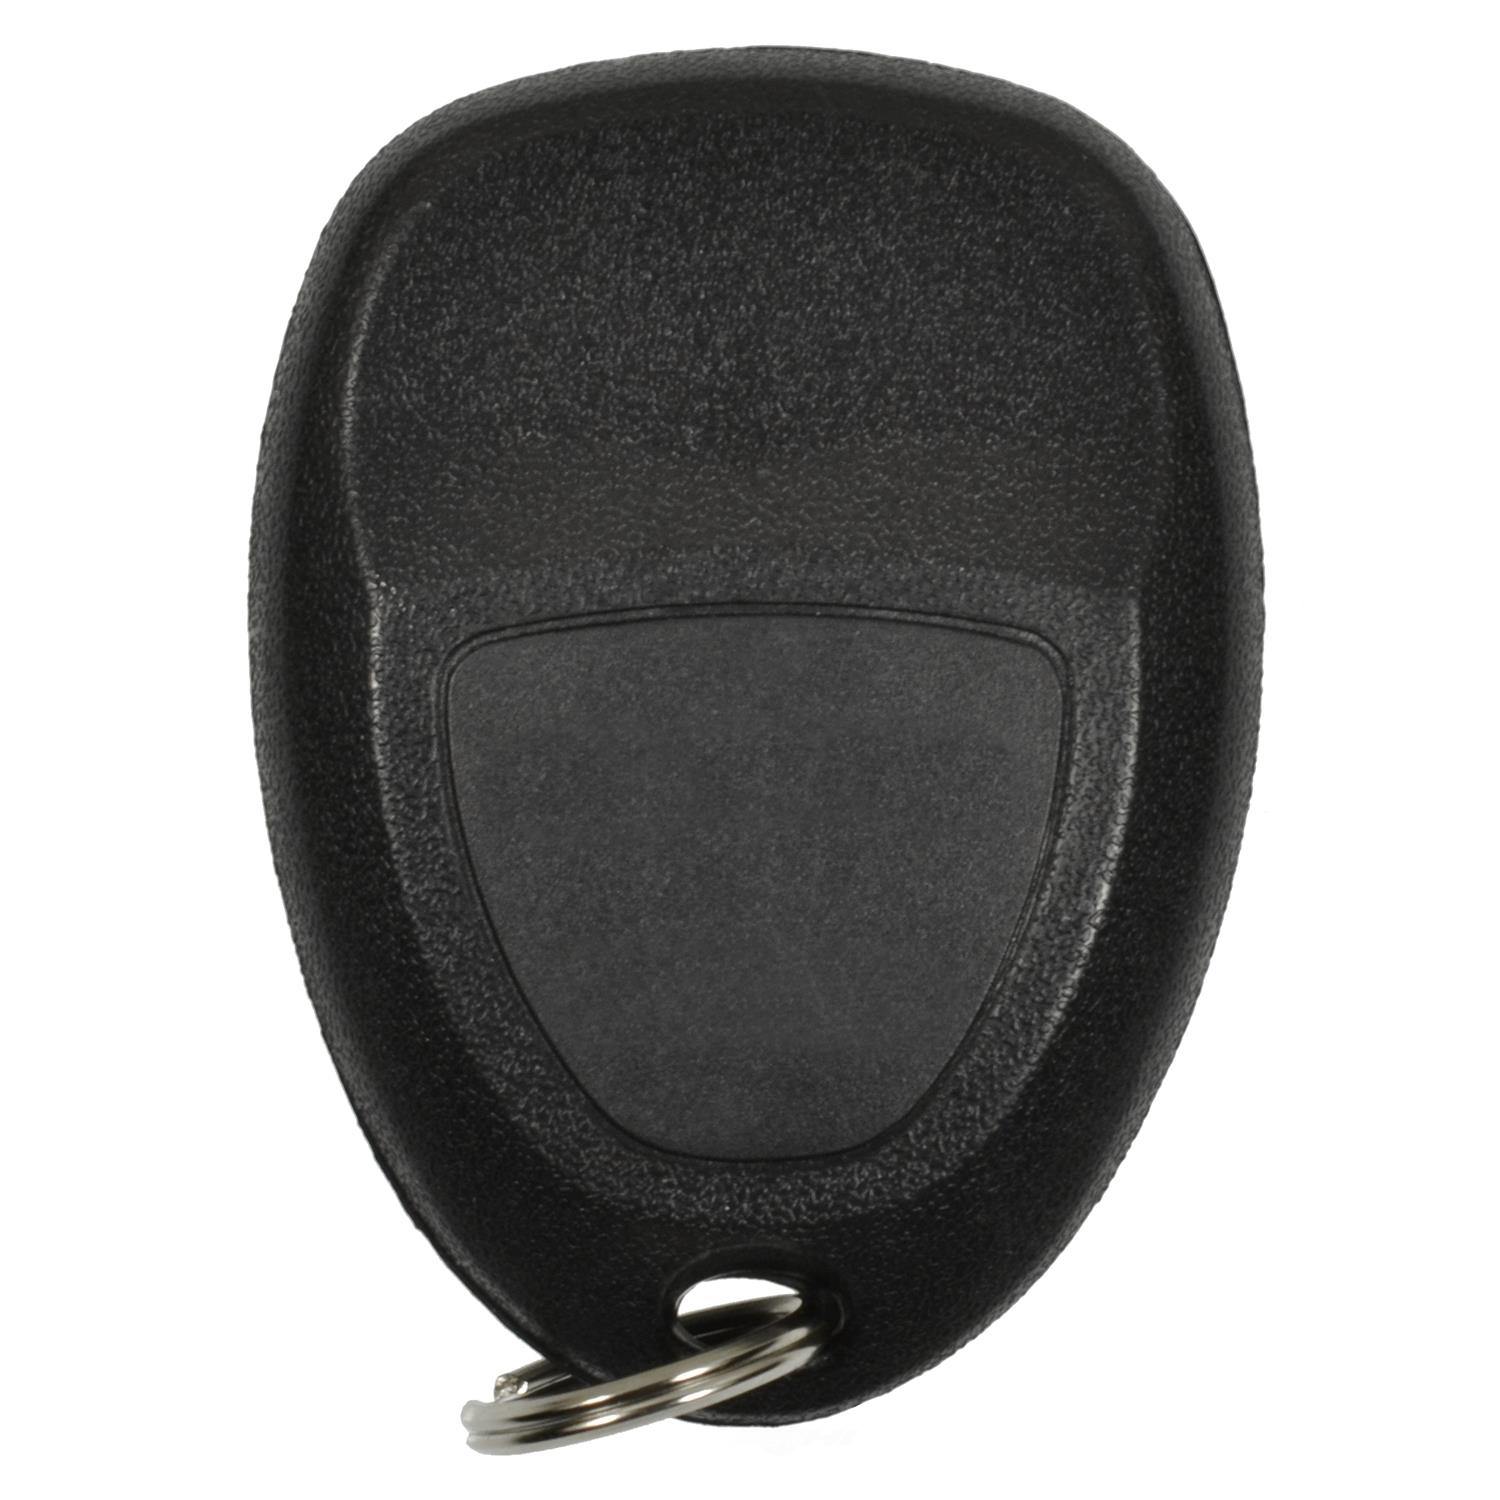 TECHSMART - Remote Control Transmitter for Keyless Entry & Alarm System - TCS C02029